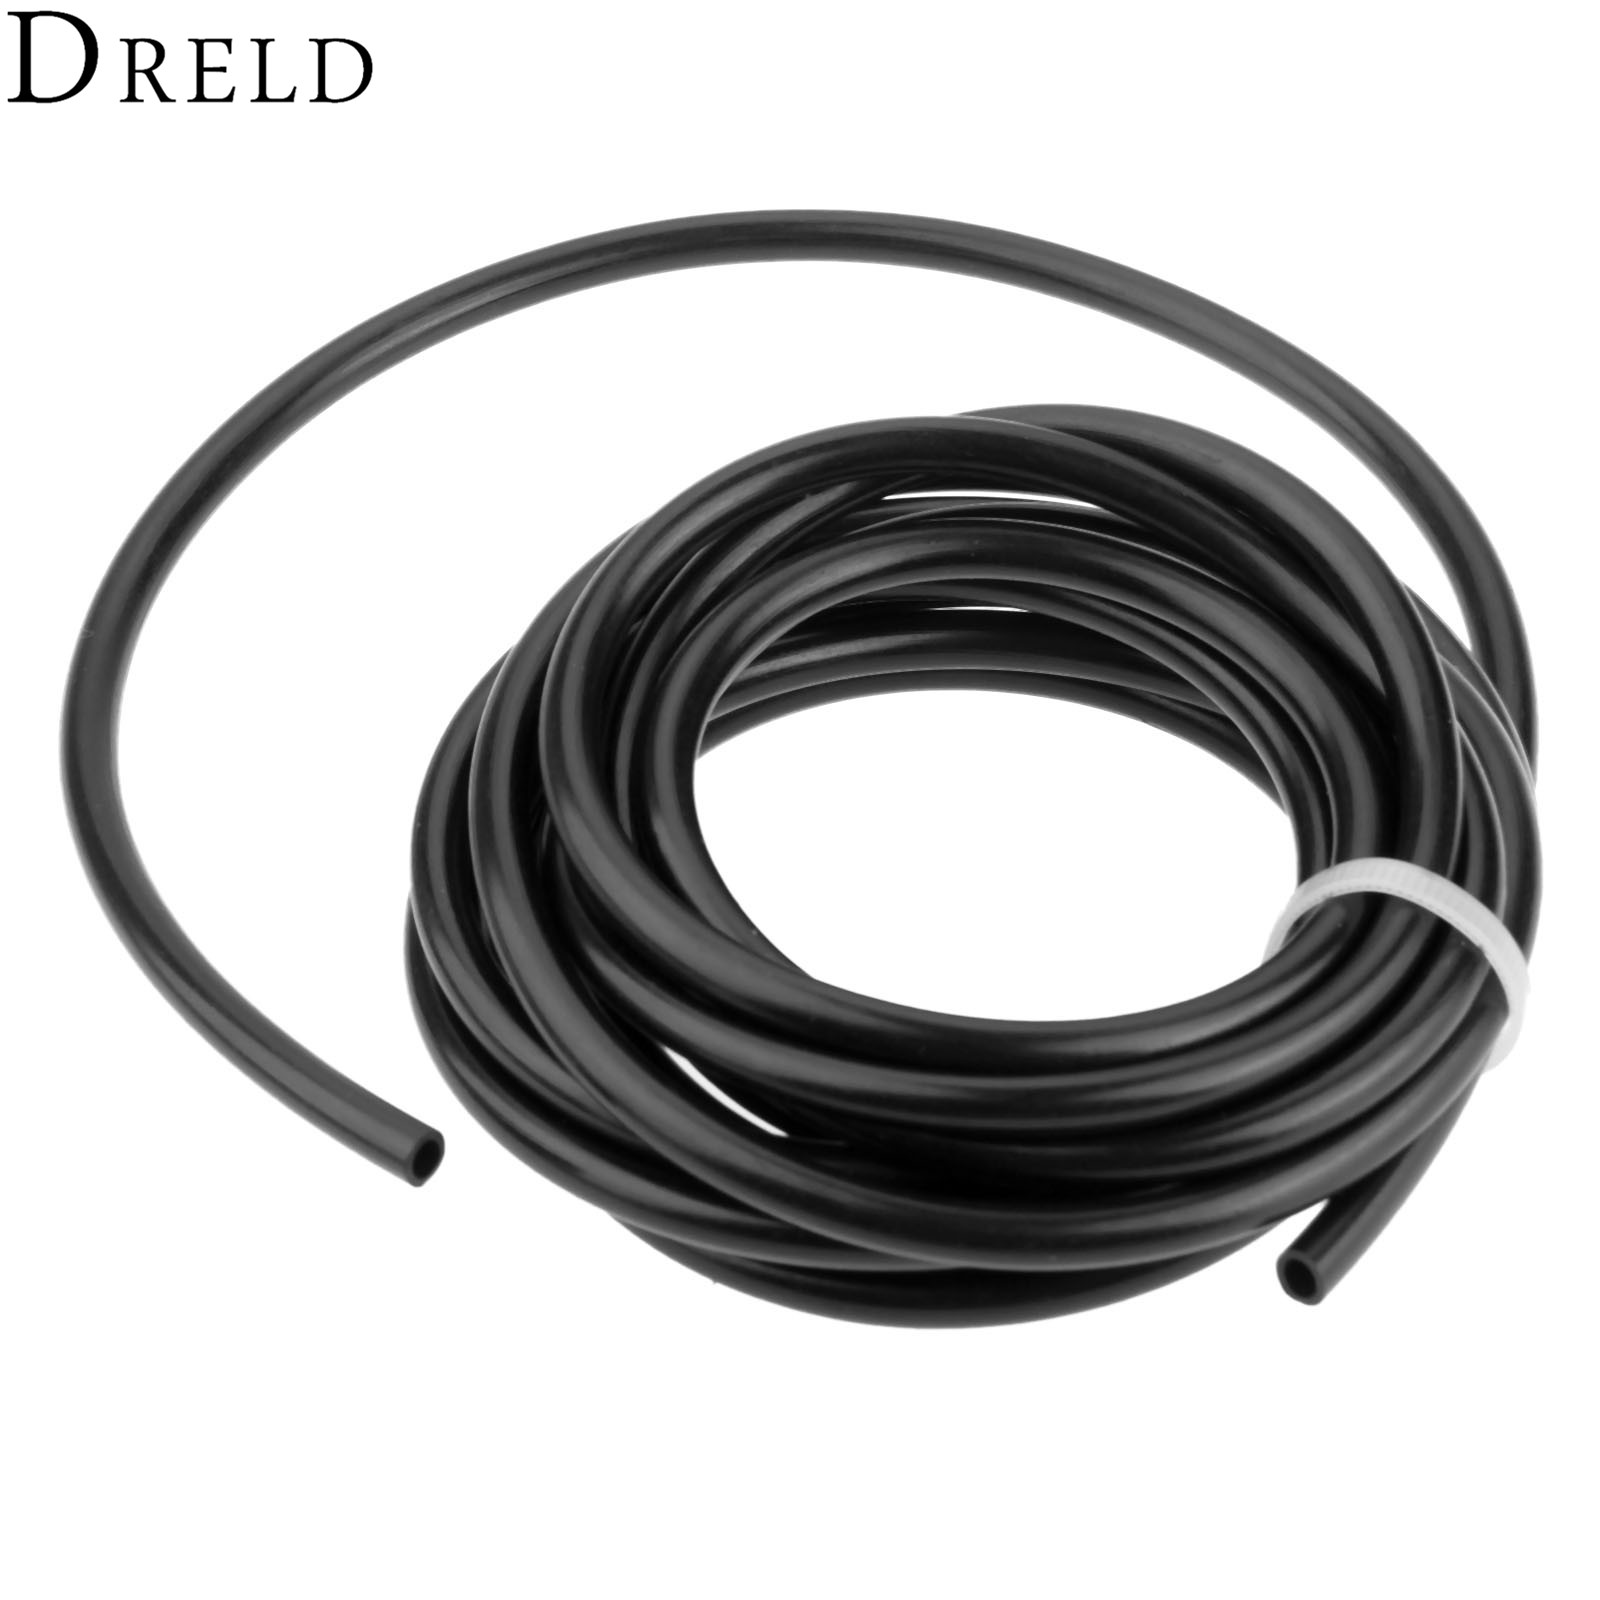 DRELD Chainsaw Fule Oil Tank Chain Saw Spare Parts Black Oil Pipe Inner Dia 3.5mm 3 Meter Garden Power Tools